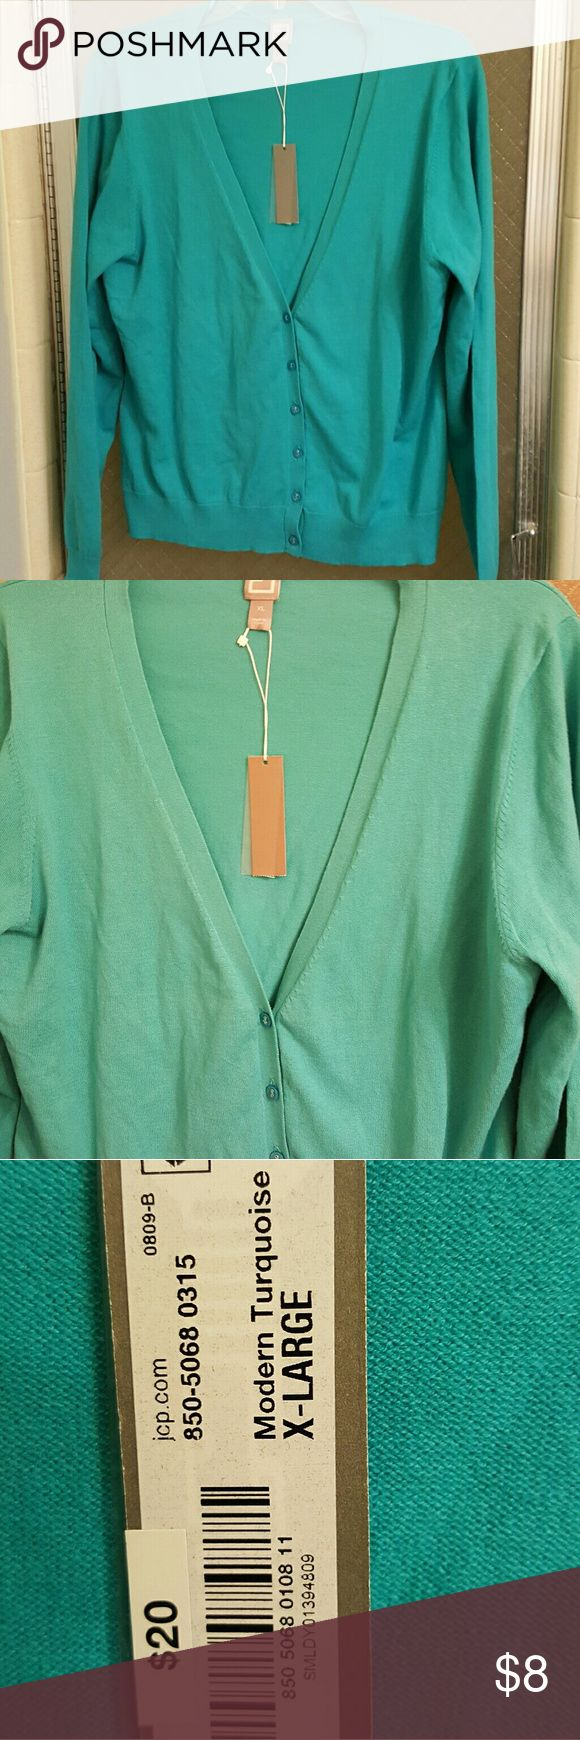 Jcp Turquoise Cardigan Sweater With tags, XL turquoise cardigan sweater. Never worn jcp Sweaters Cardigans